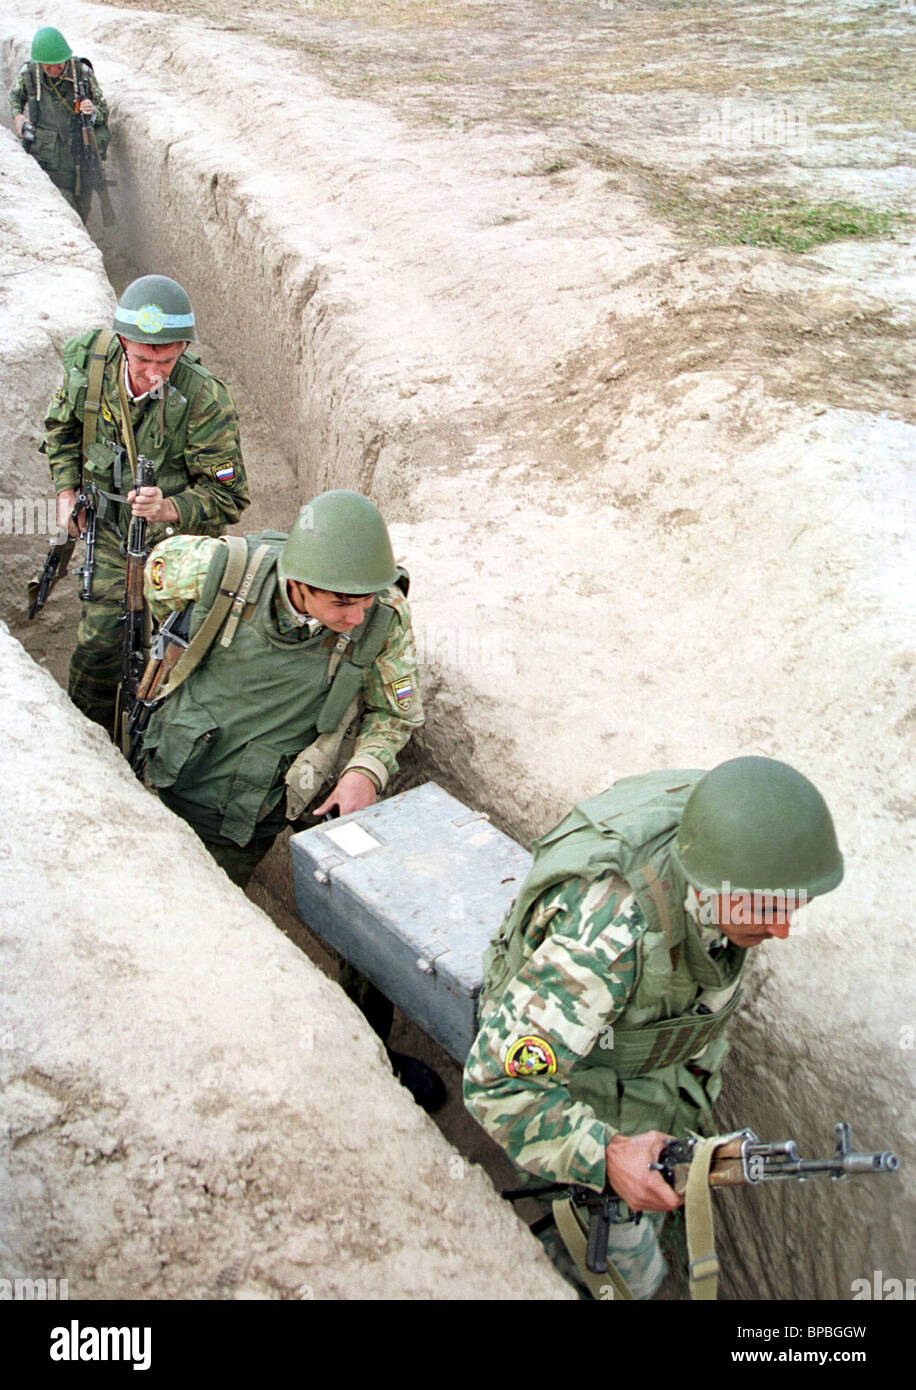 Russian border guards and soldiers onTajik-Afghan frontier keeping alert - Stock Image